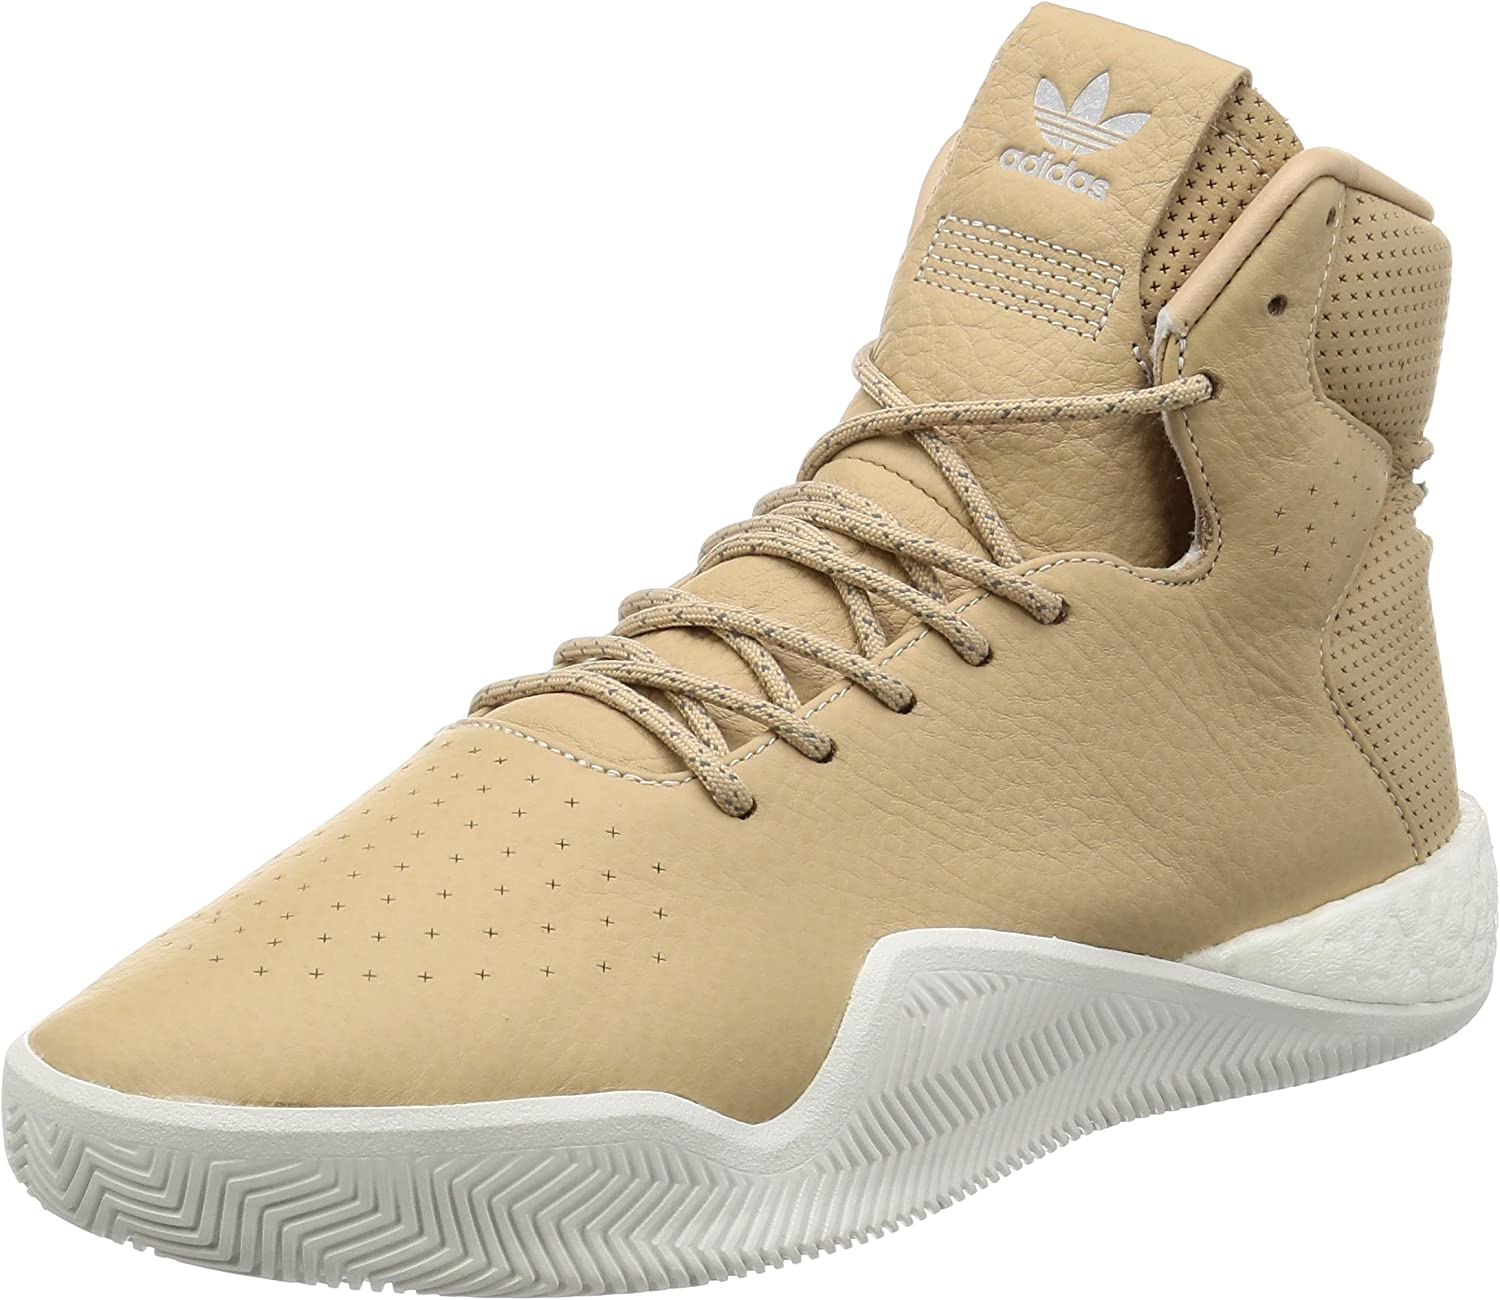 Adidas Tubular Instinct Boost BB8400 Footwear Beige Mens Trainers Sneaker shoes Size  EU 44 2 3 UK 10